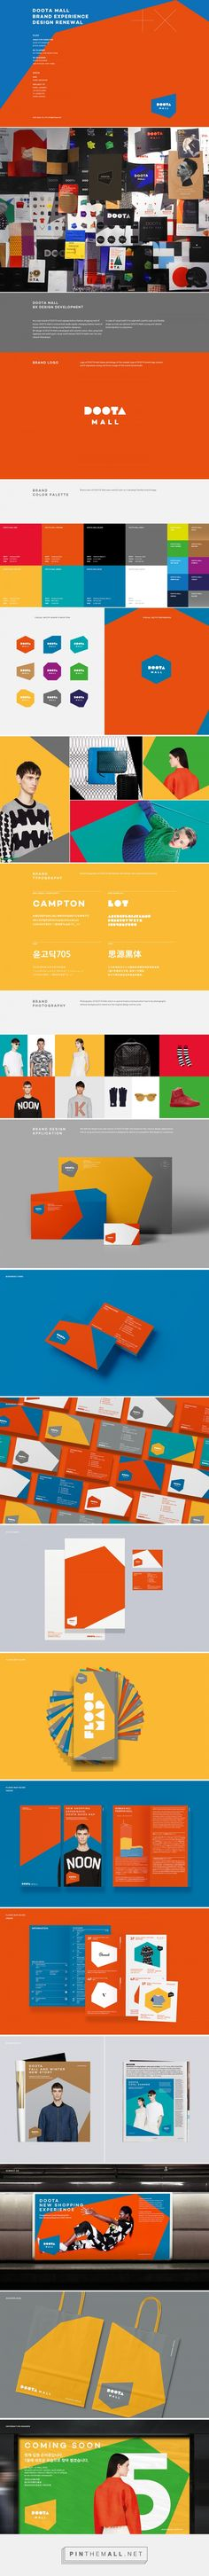 DOOTA Mall Brand eXperience Design Renewal on Behance... - a grouped images picture - Pin Them All